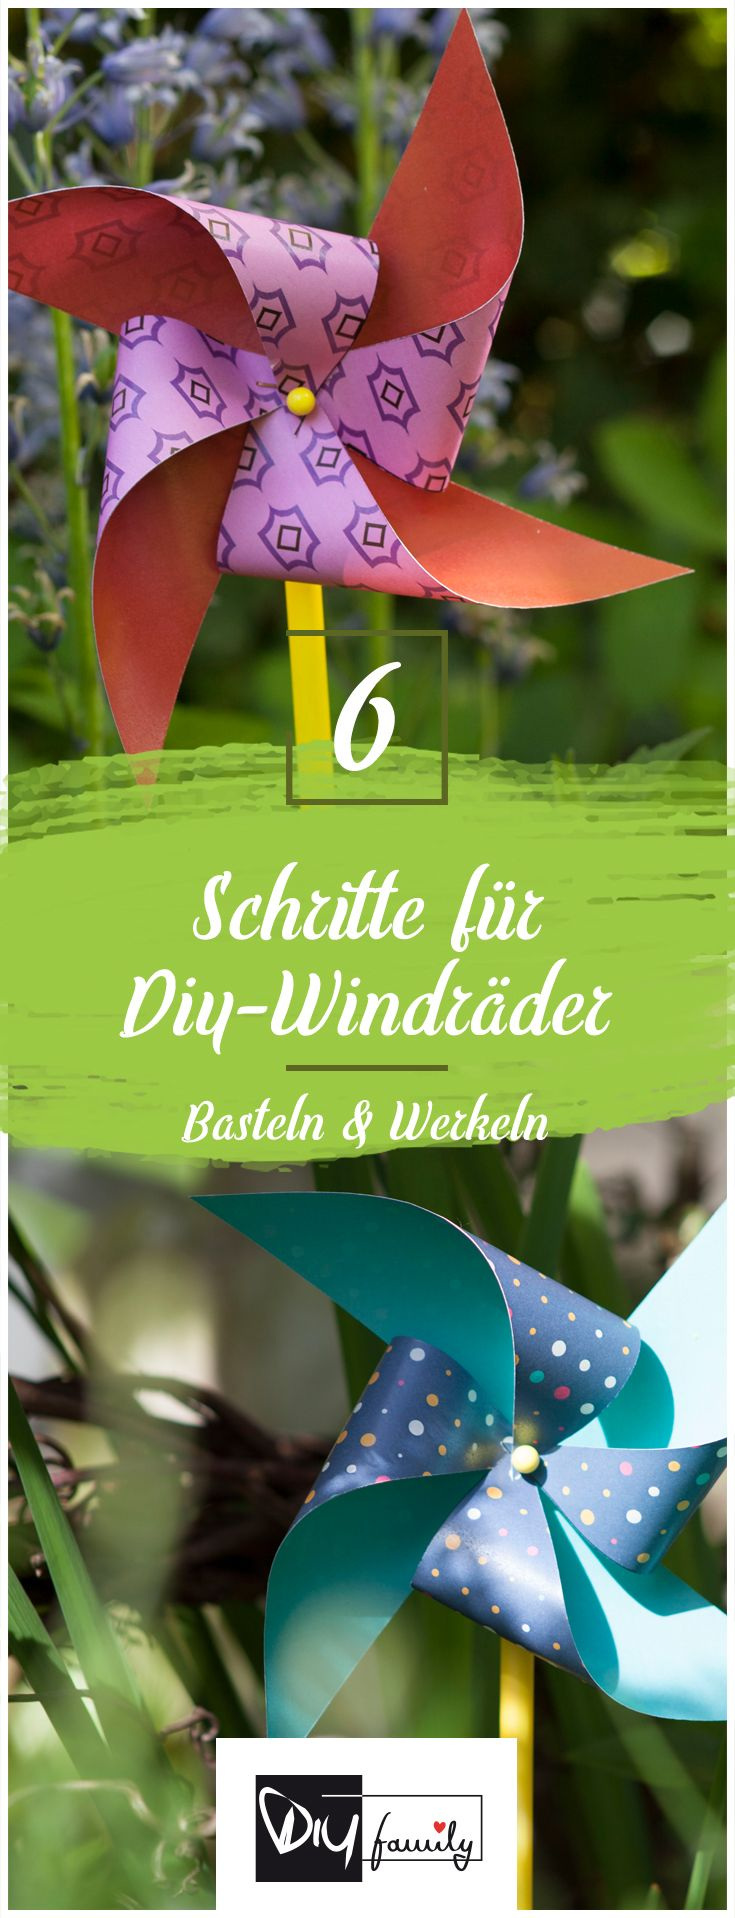 Photo of Stylische Windräder im Retro-Look #retro, #summer, #garden, #windy, #pattern,